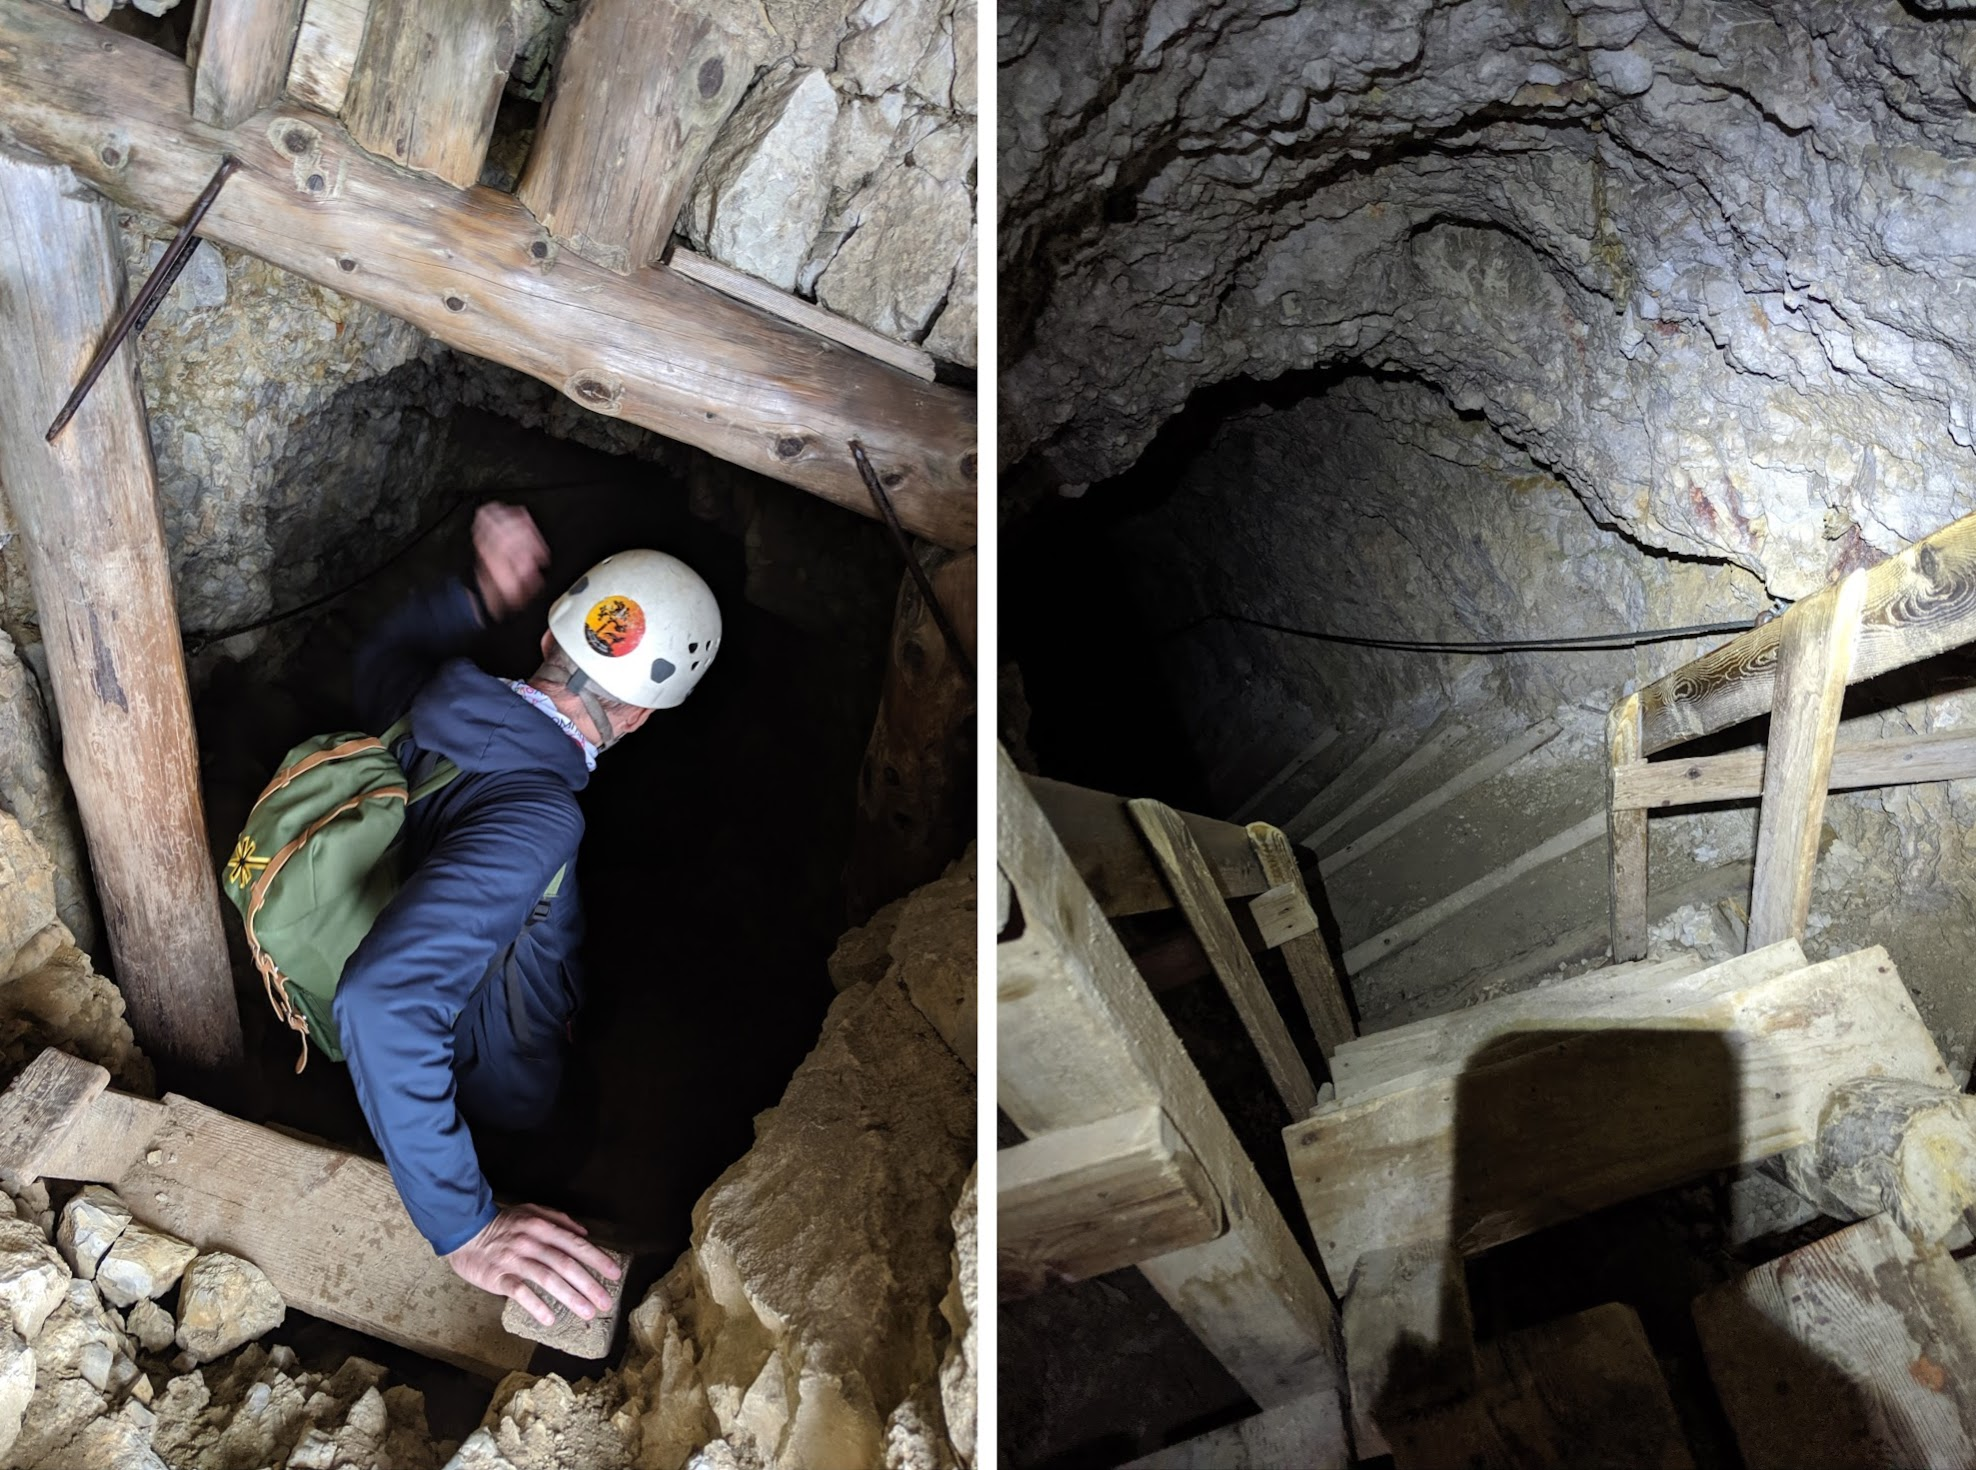 Left: Jack entering the tunnel system. Right: Steep steps inside the tunnel.